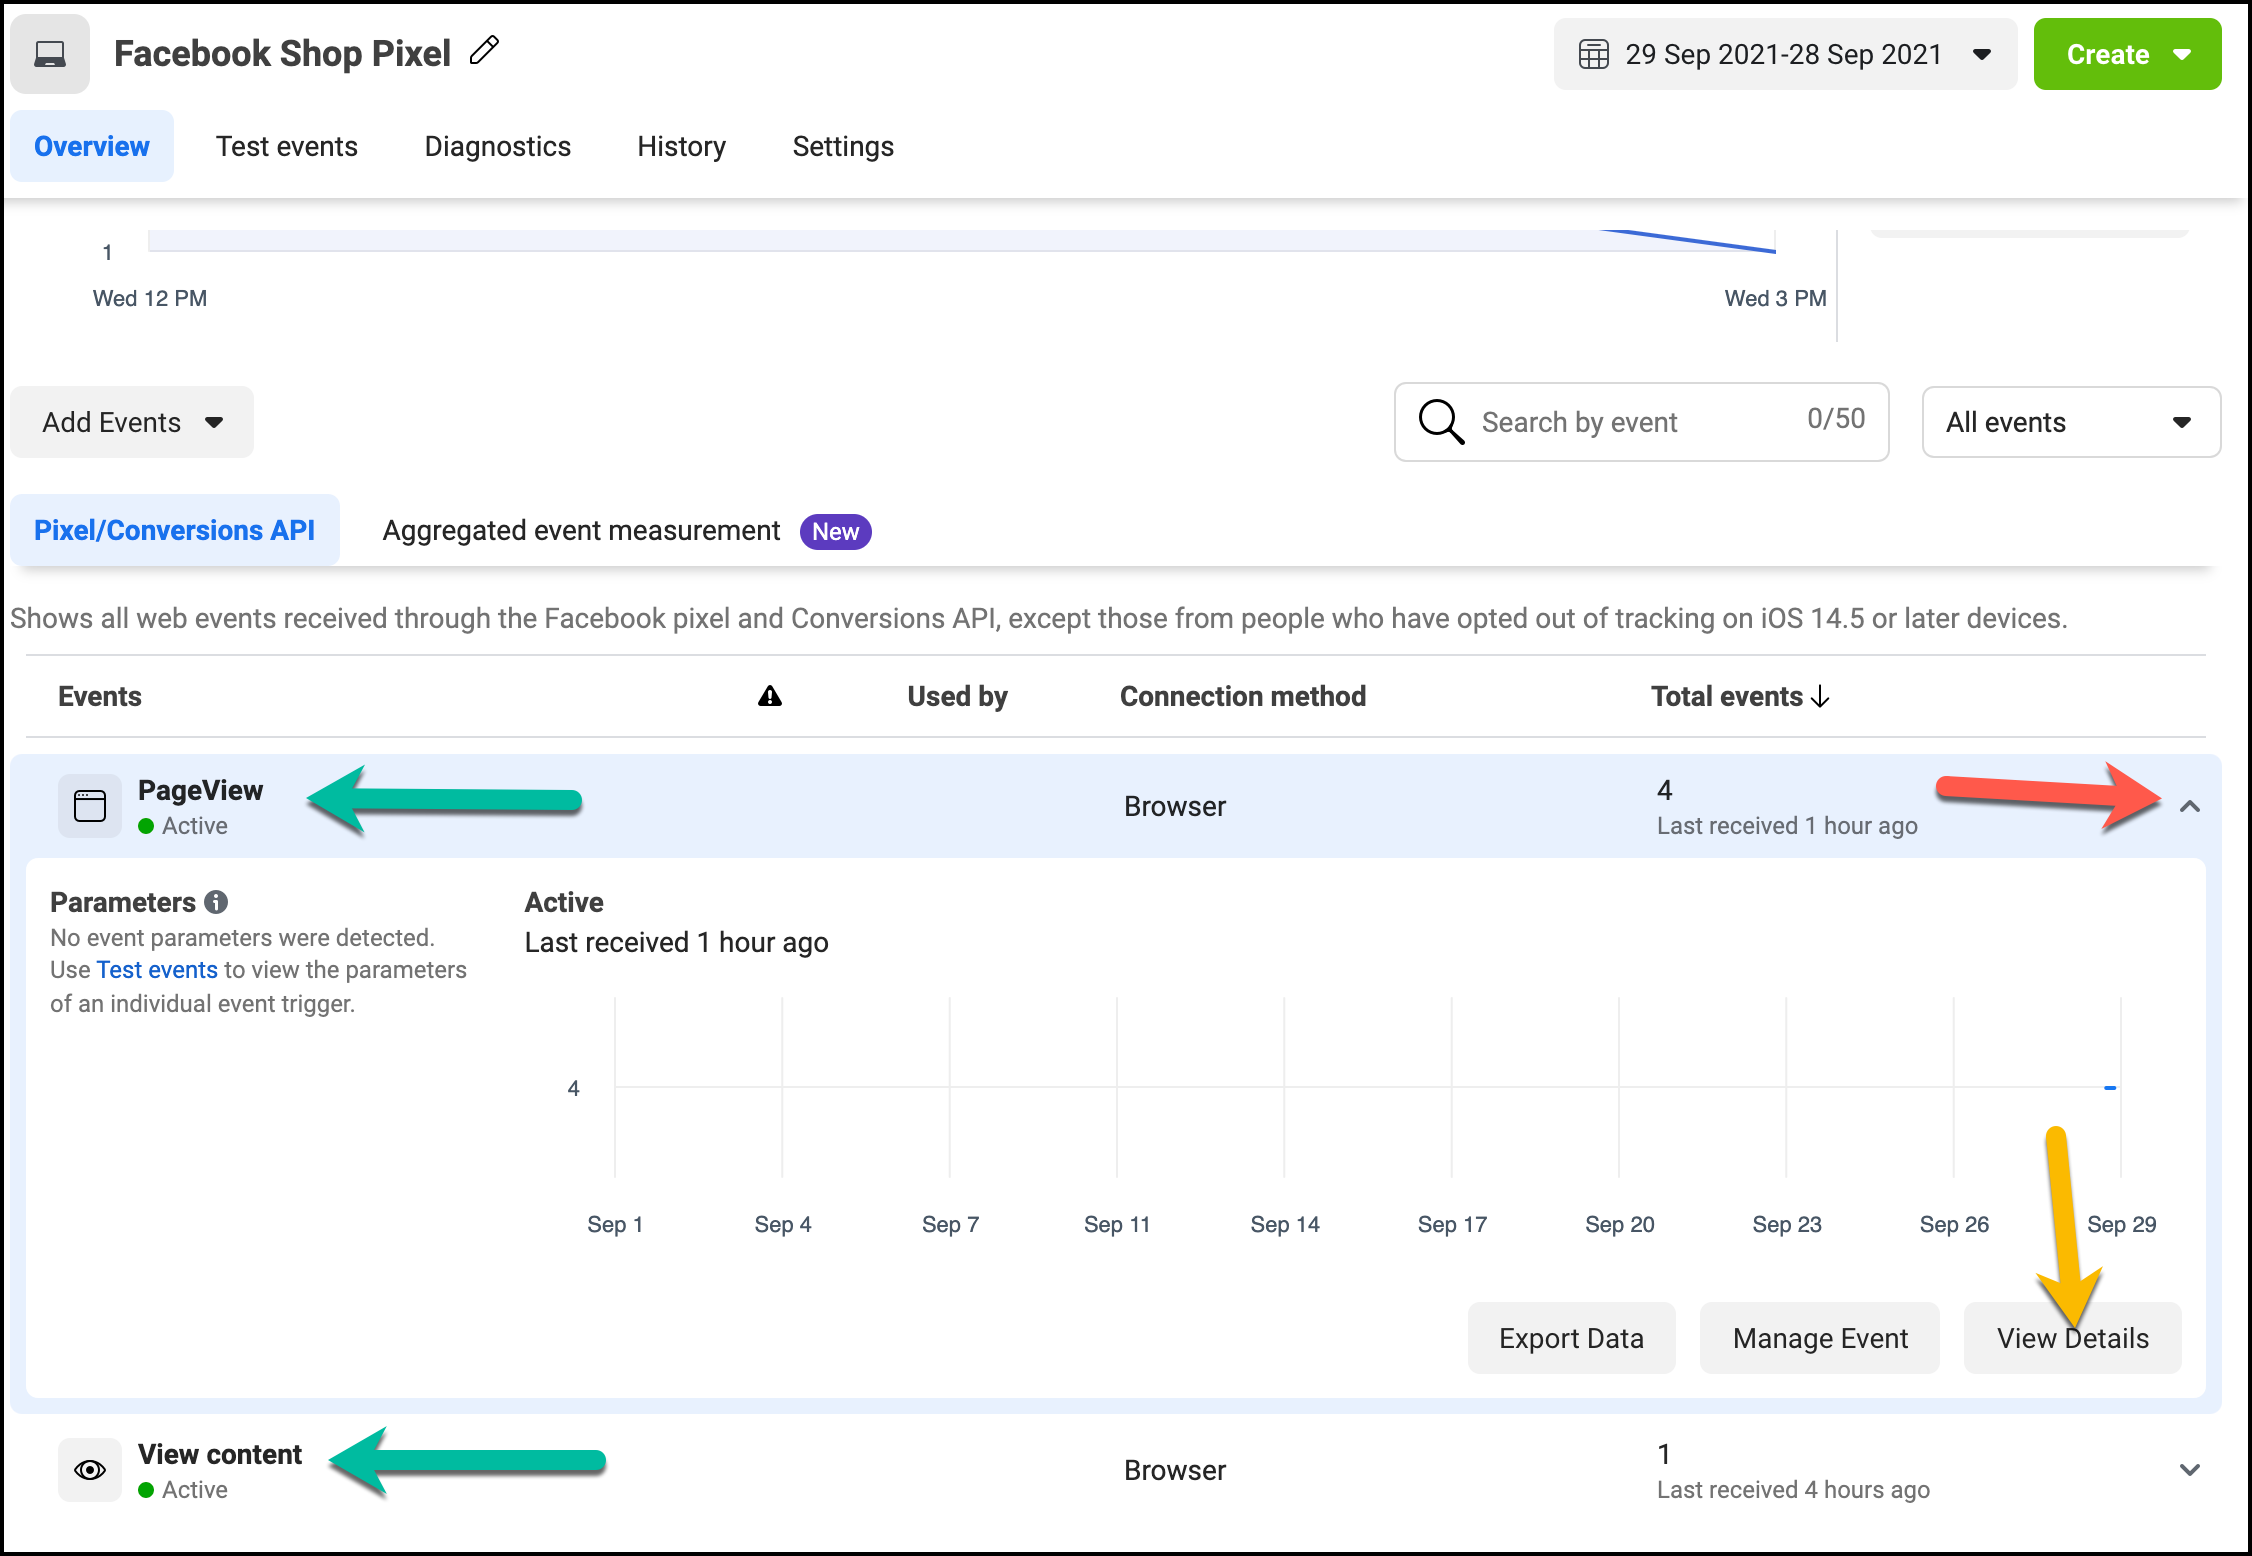 Facebook Events Manager for Events and Parameters